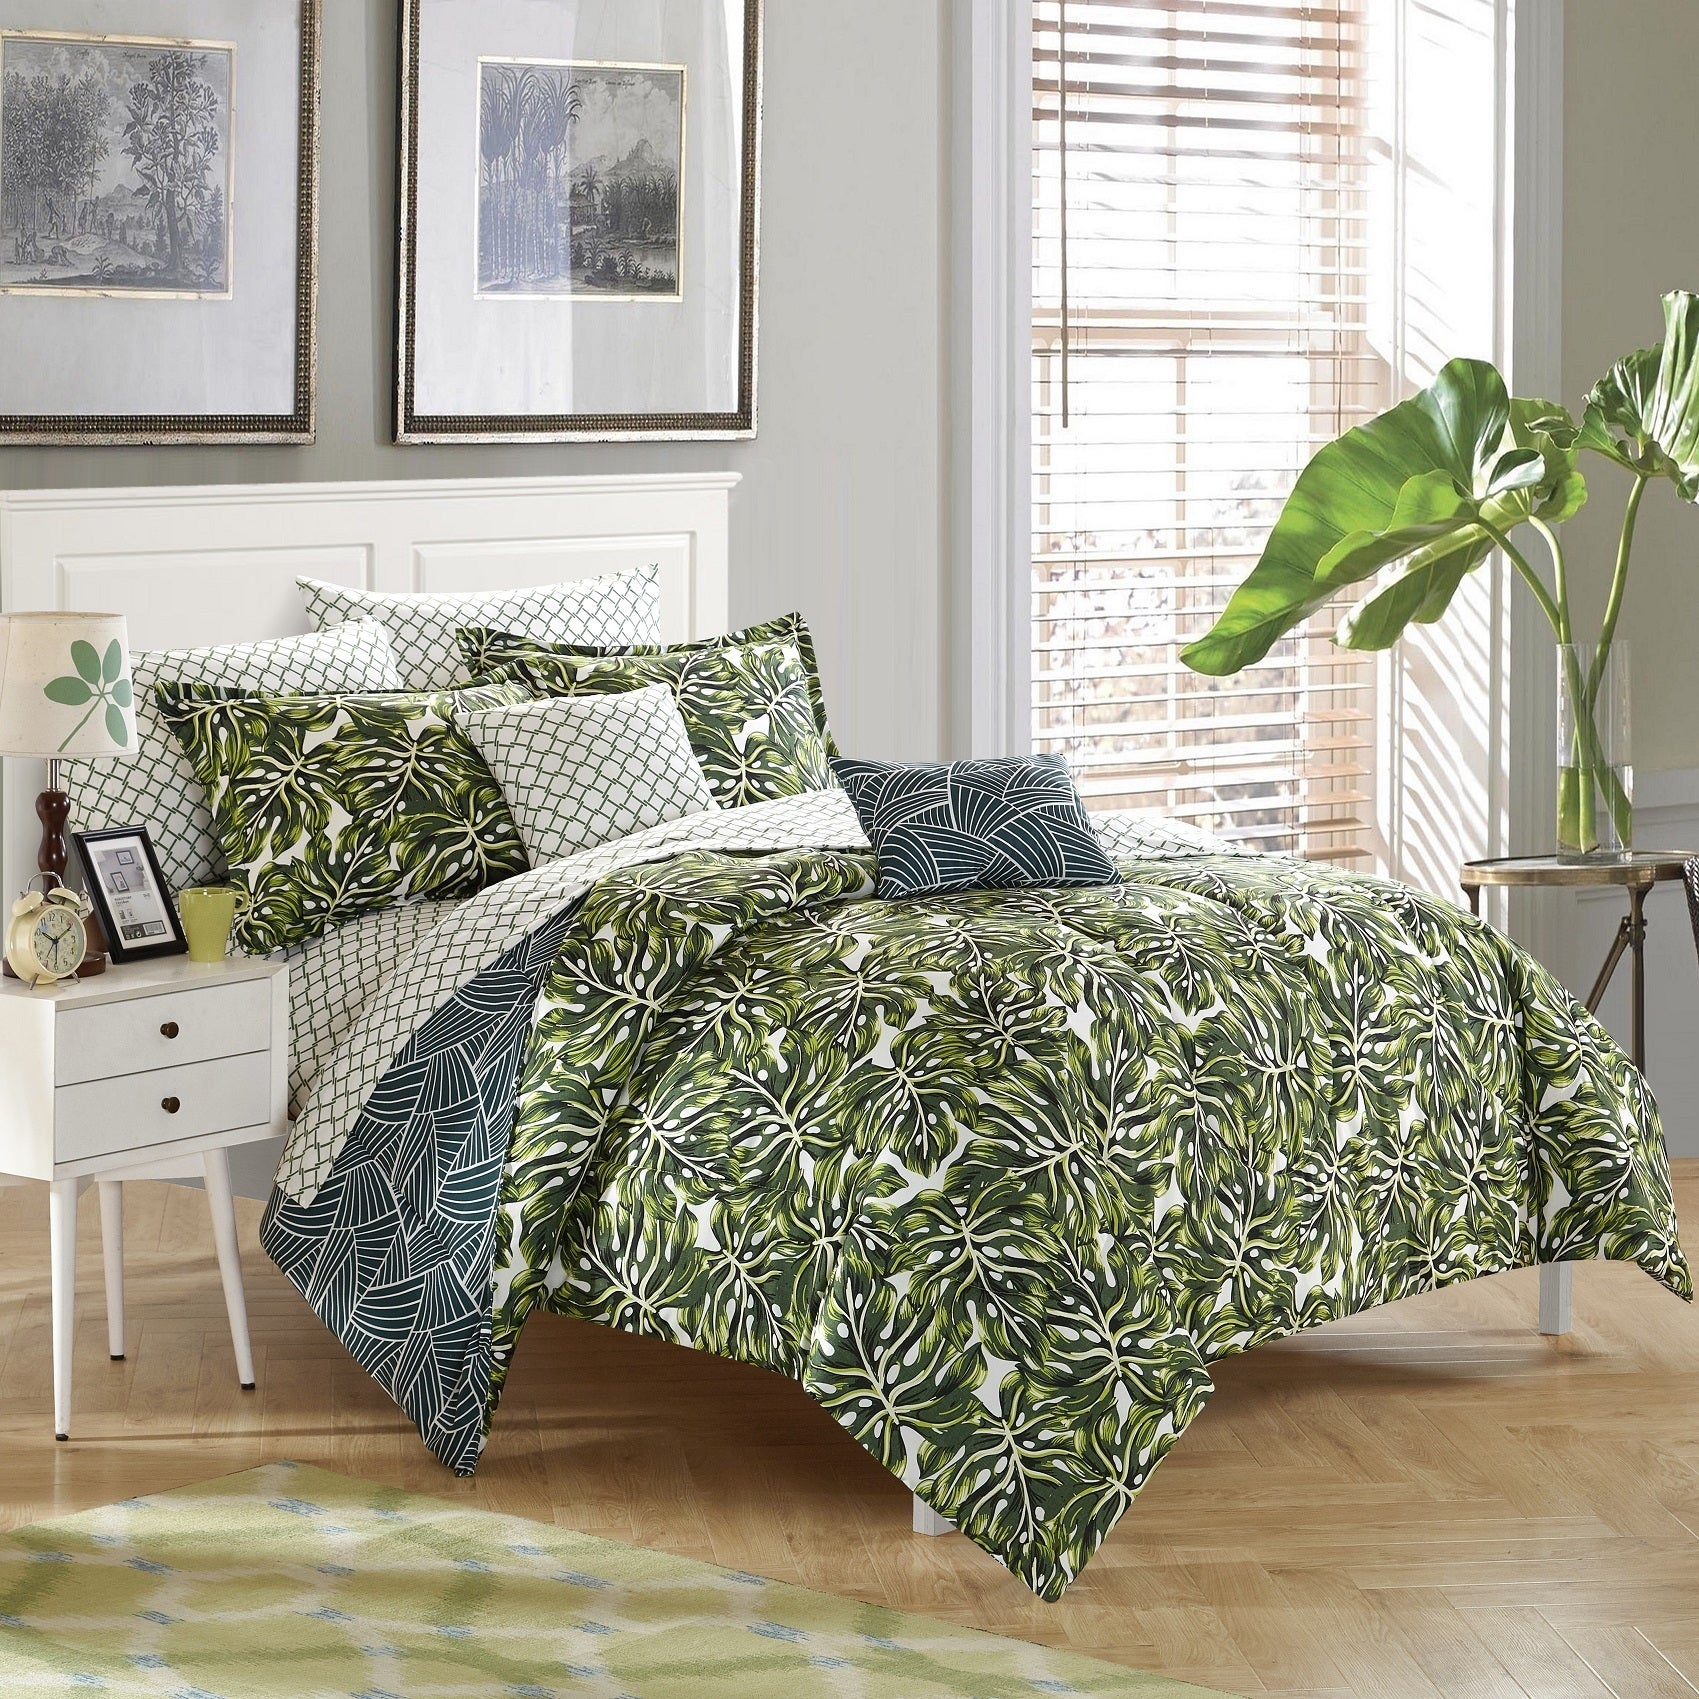 Hawaiian Tropical Leaves Beach House Queen Comforter 7 Piece Bed In A Bag